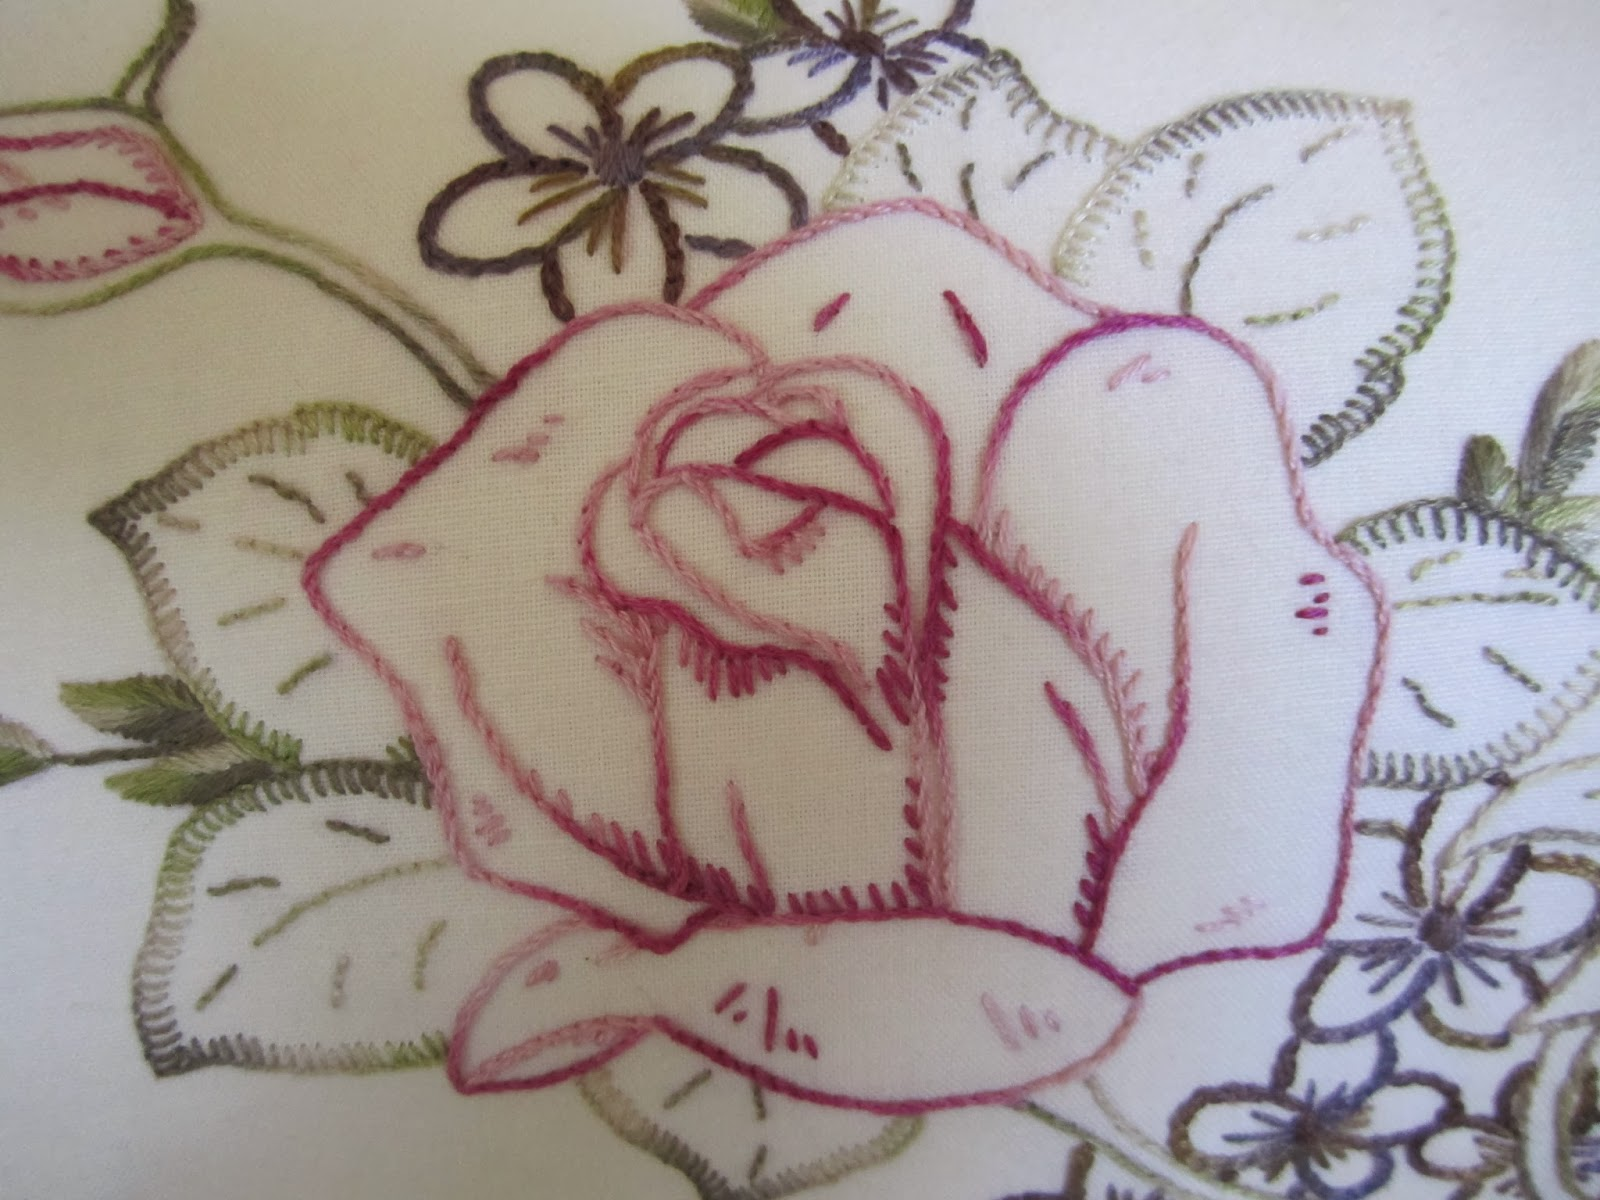 Ribbon work bed sheets designs - I Chose To Stitch The Roses Dahlia And Bird Wattle Blossom In Stem Stitch And The Rose Leaves Ash Outlined In A Small Blanket Stitch With Vein Detail